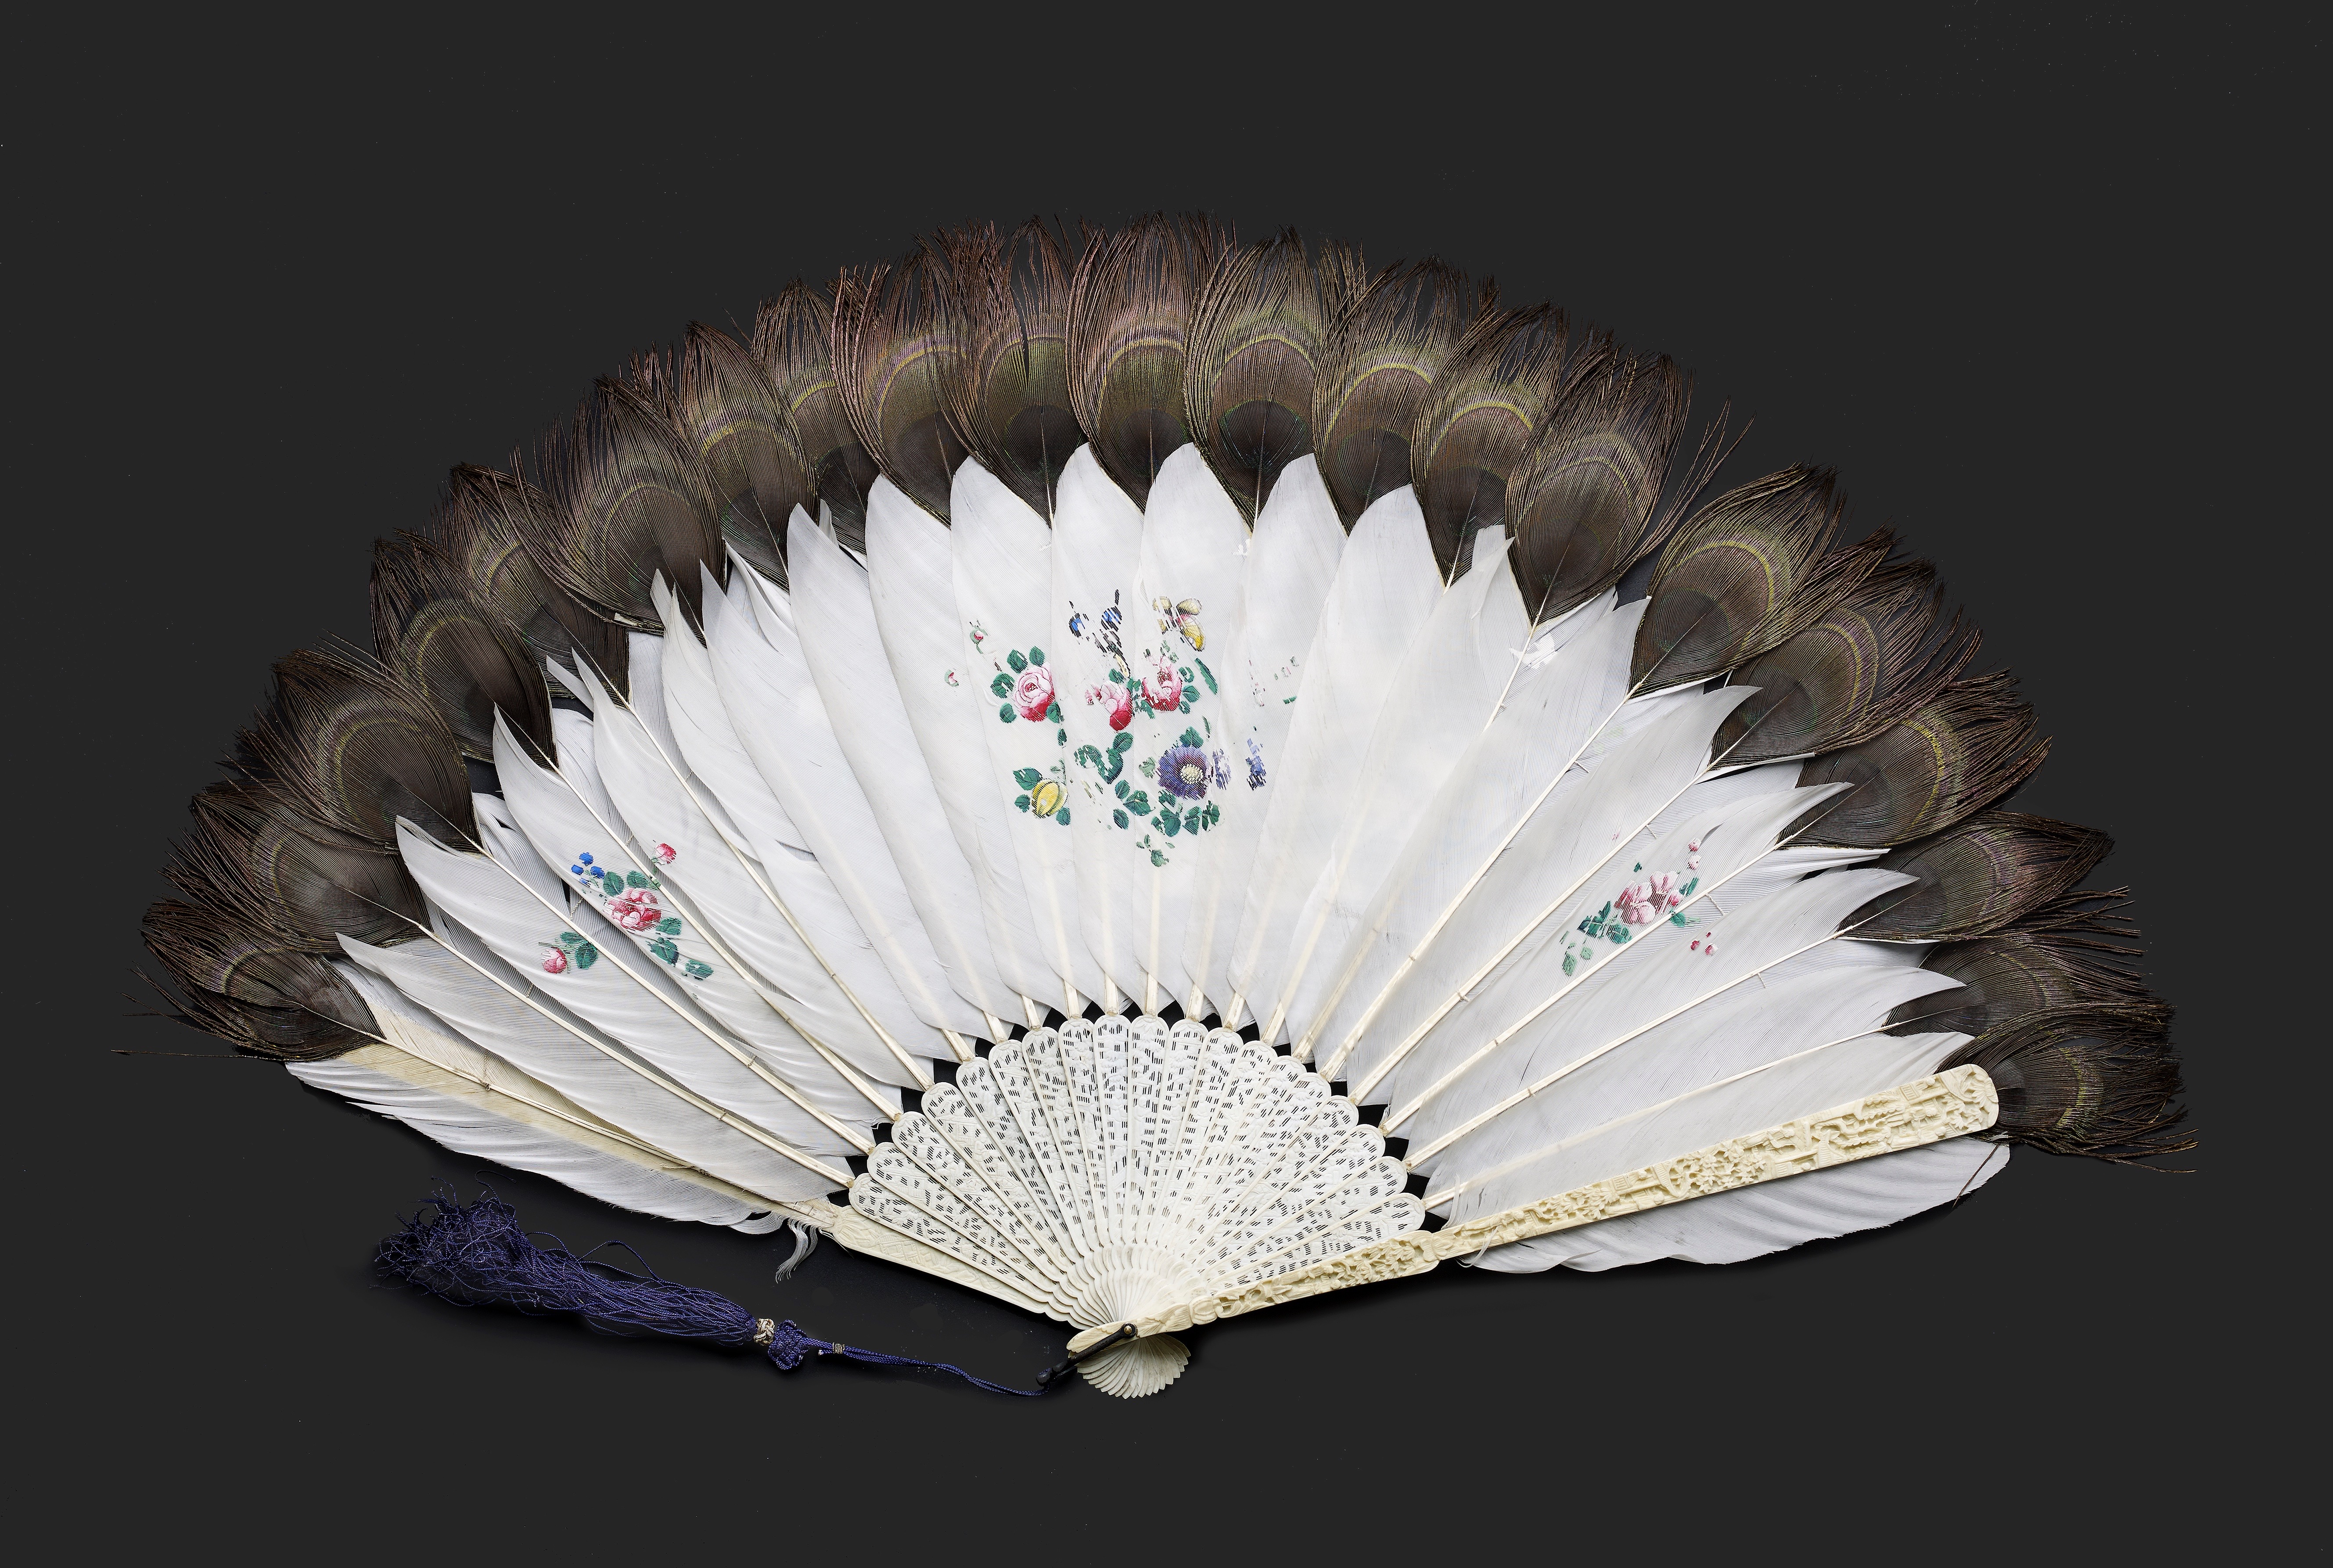 Lot 7 - A CHINESE EXPORT IVORY AND PEACOCK FEATHER FAN, QING DYNASTY, DAOGUANG PERIOD, CIRCA 1850